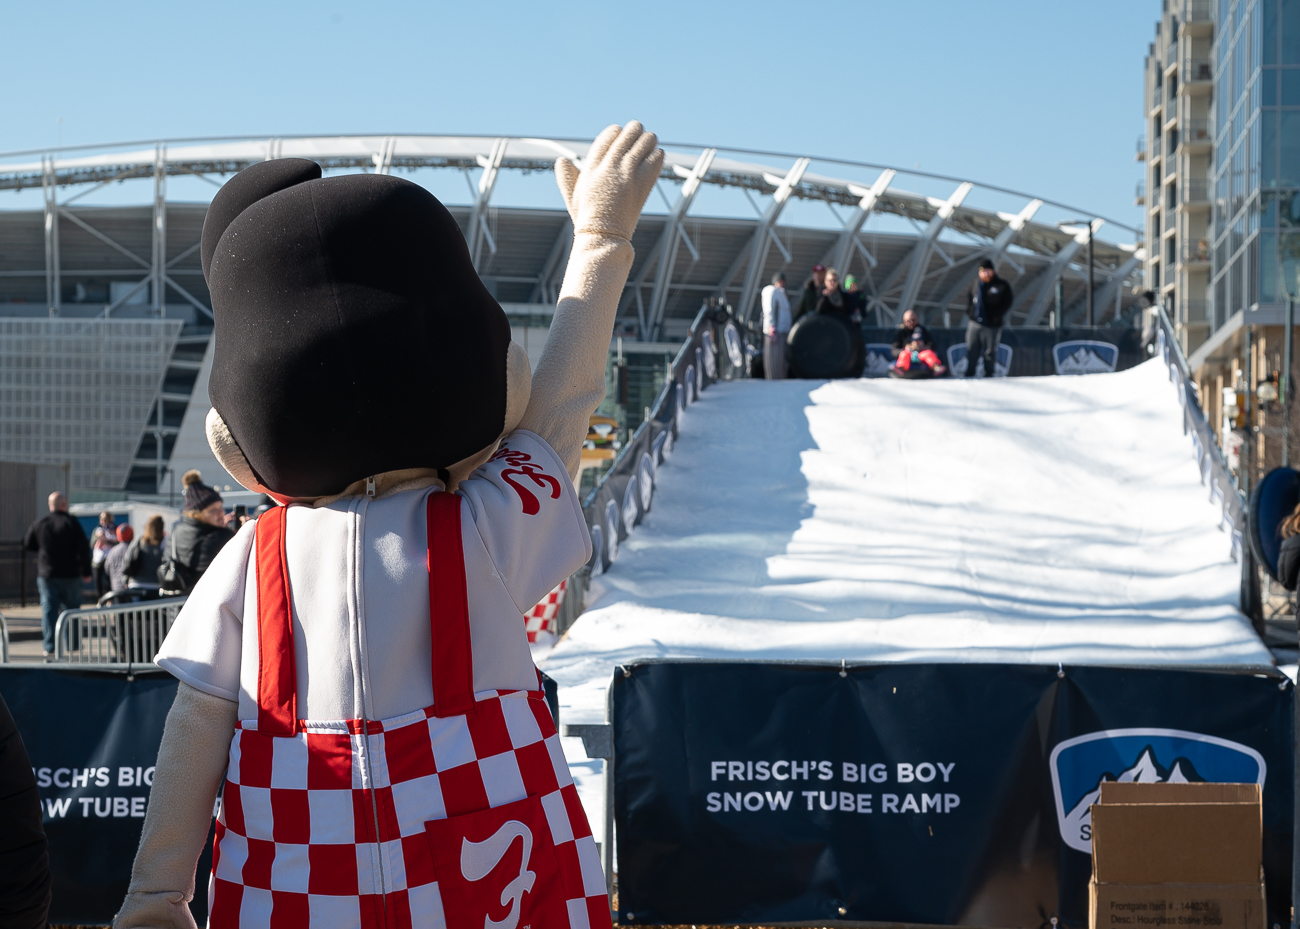 The Frisch's Big Boy Snow Tube Run is a 50-foot-long snow tube hill that's set up along Freedom Way. It's not uncommon to find Big Boy himself hamming it up around the ramp. / Image: Phil Armstrong, Cincinnati Refined // Published: 1.6.20